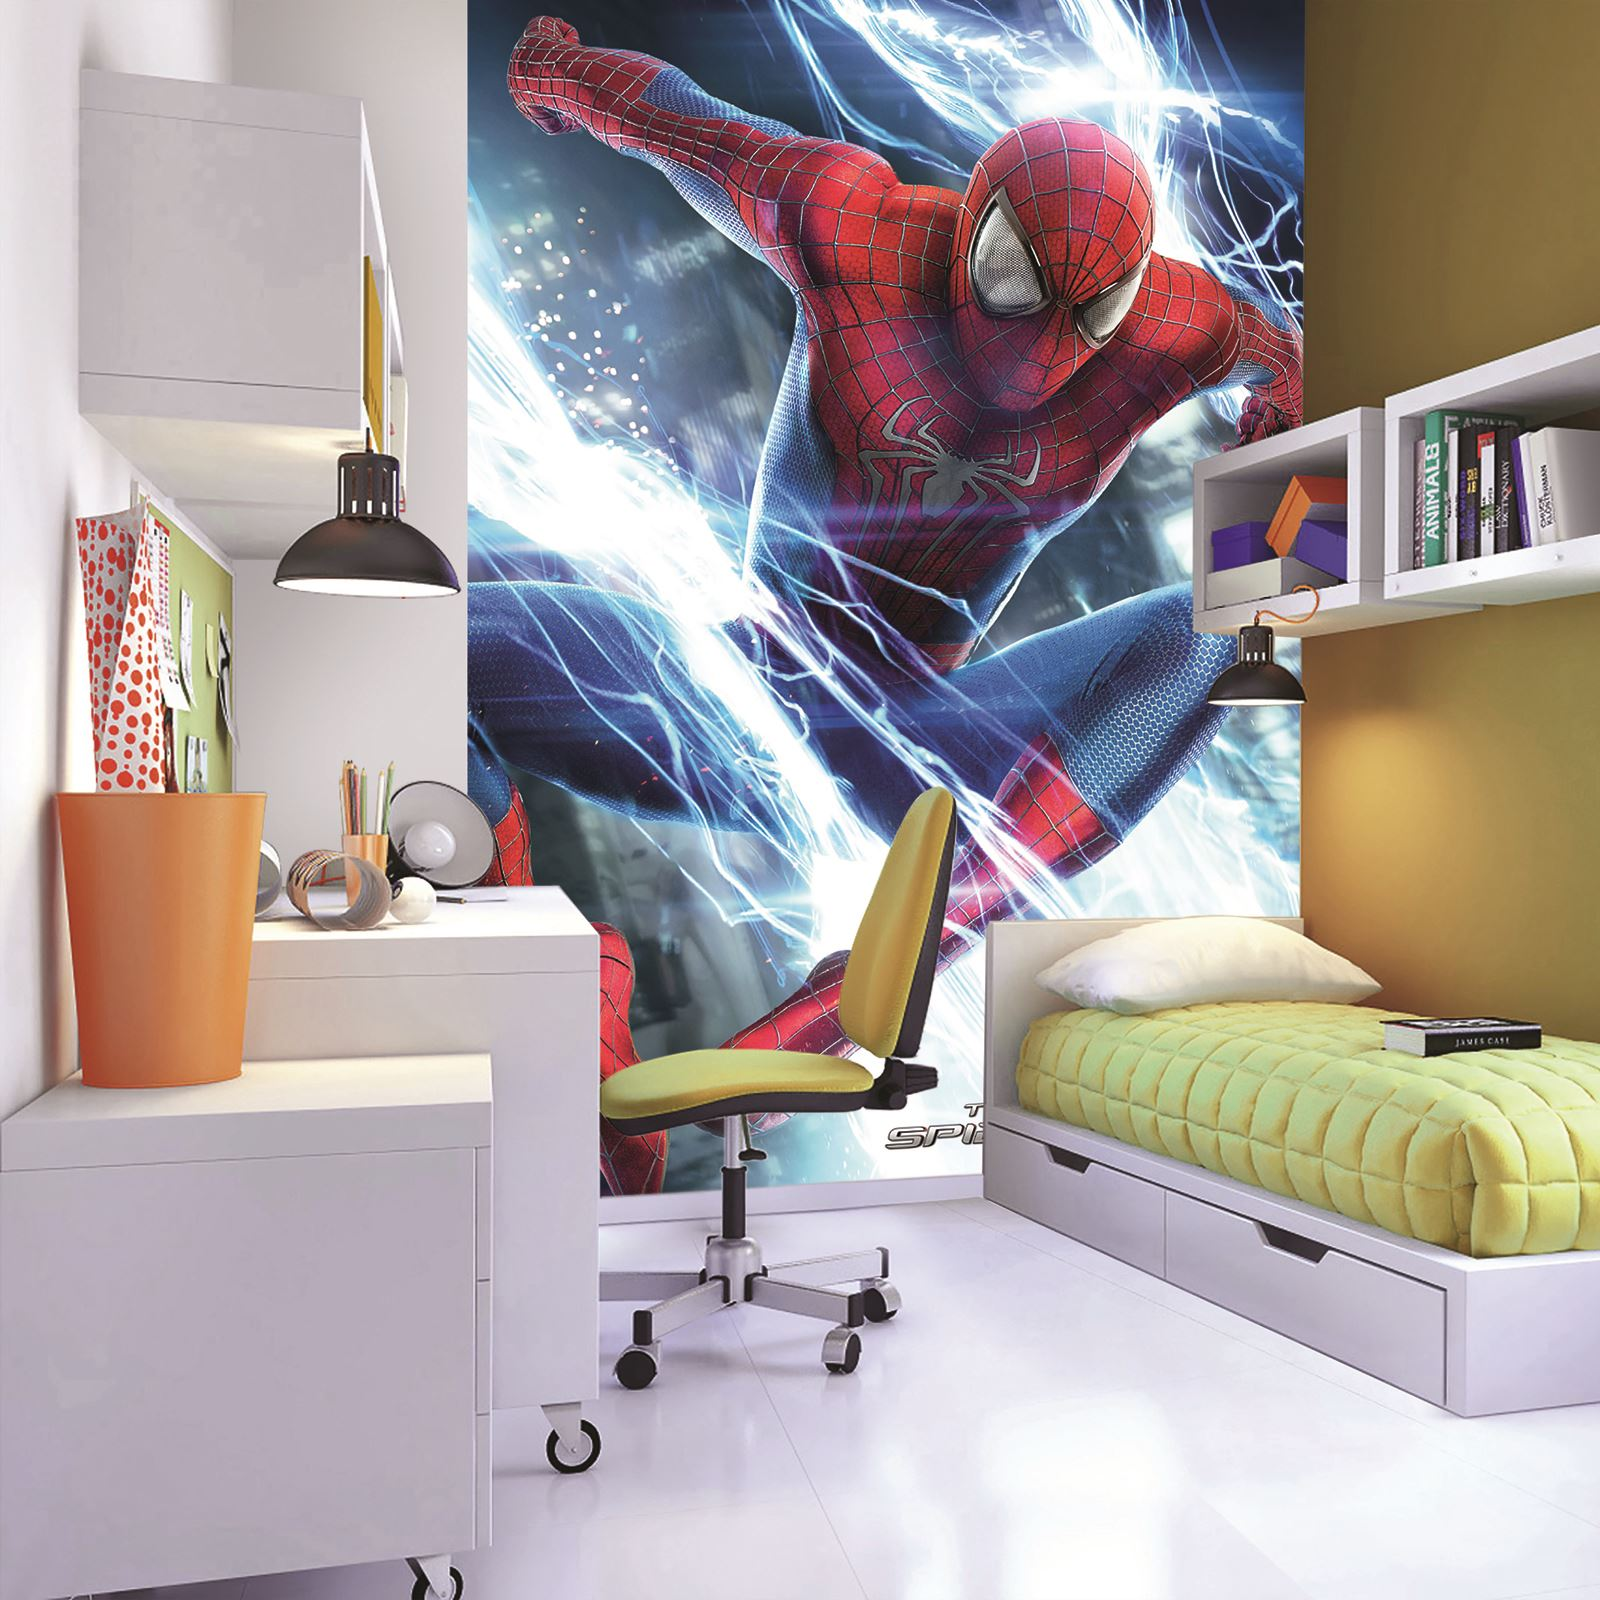 MARVEL SPIDERMAN WALLPAPER WALL MURAL 232cm x 158cm NEW ...